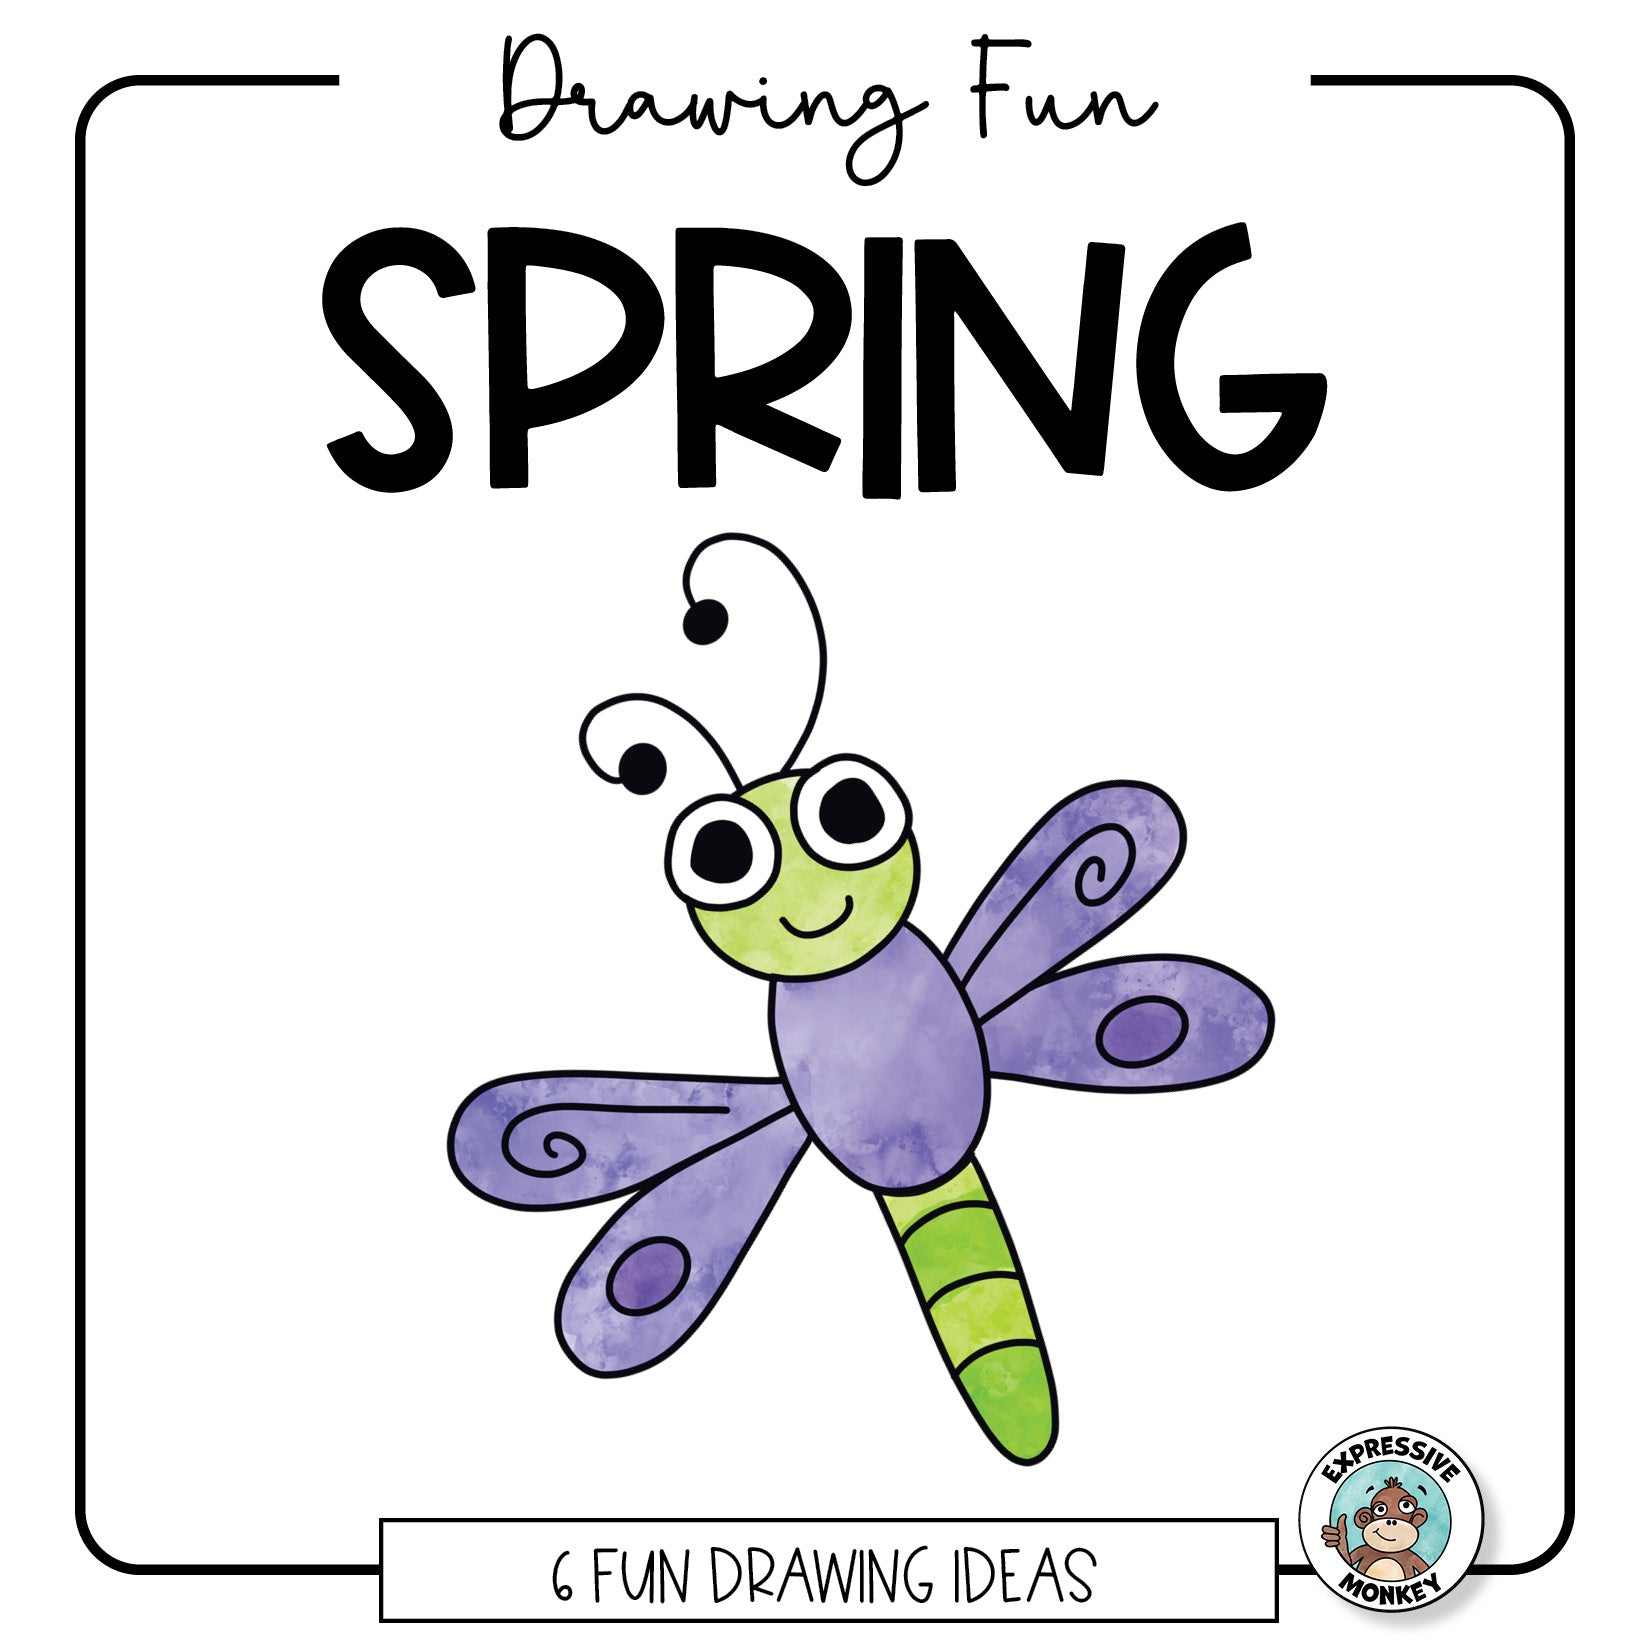 Spring Drawing Fun